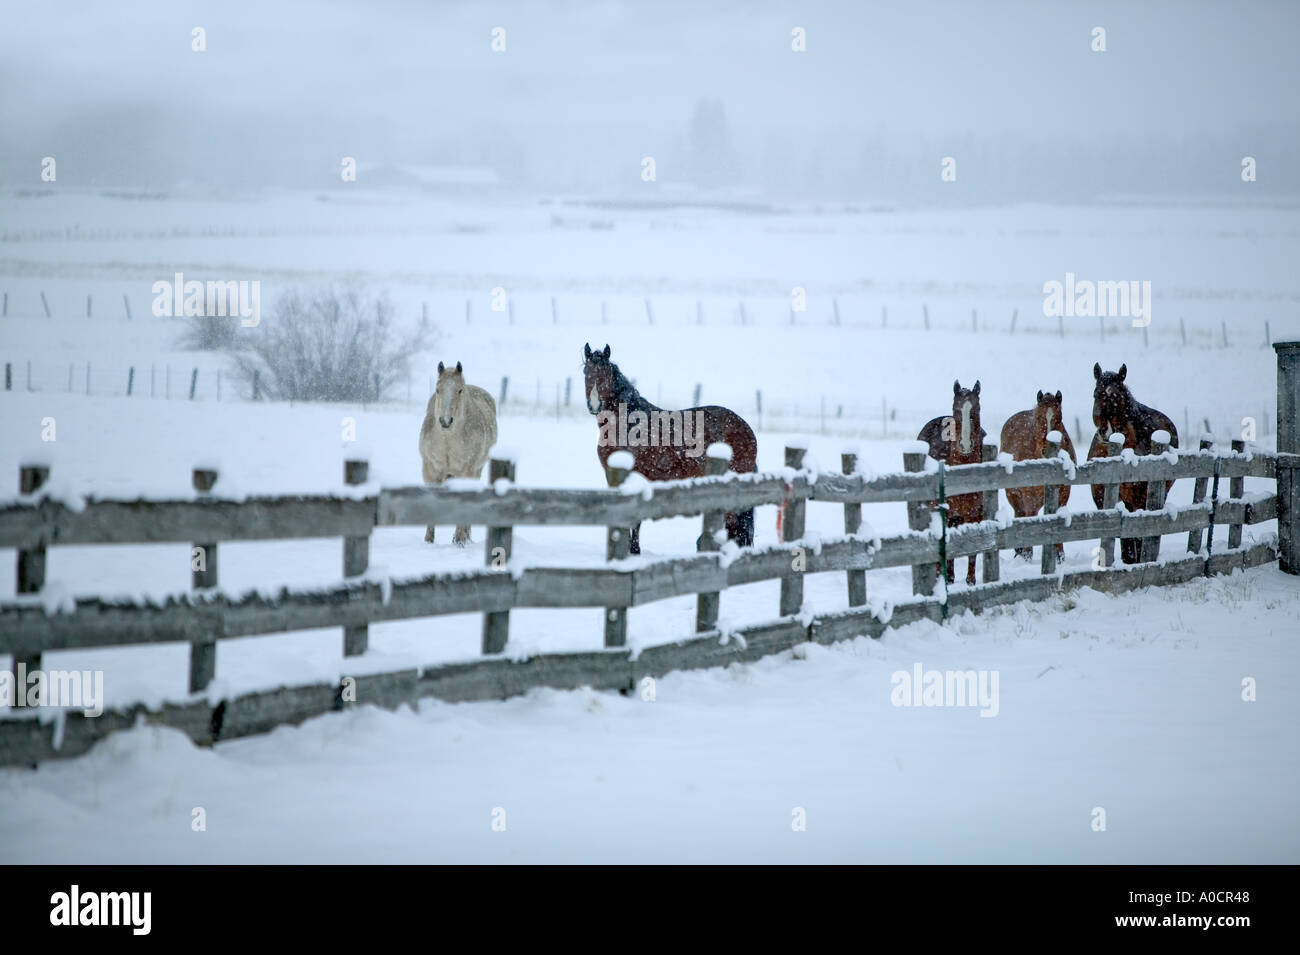 Horses in snowy pasture with fence Near Joseph Oregon - Stock Image